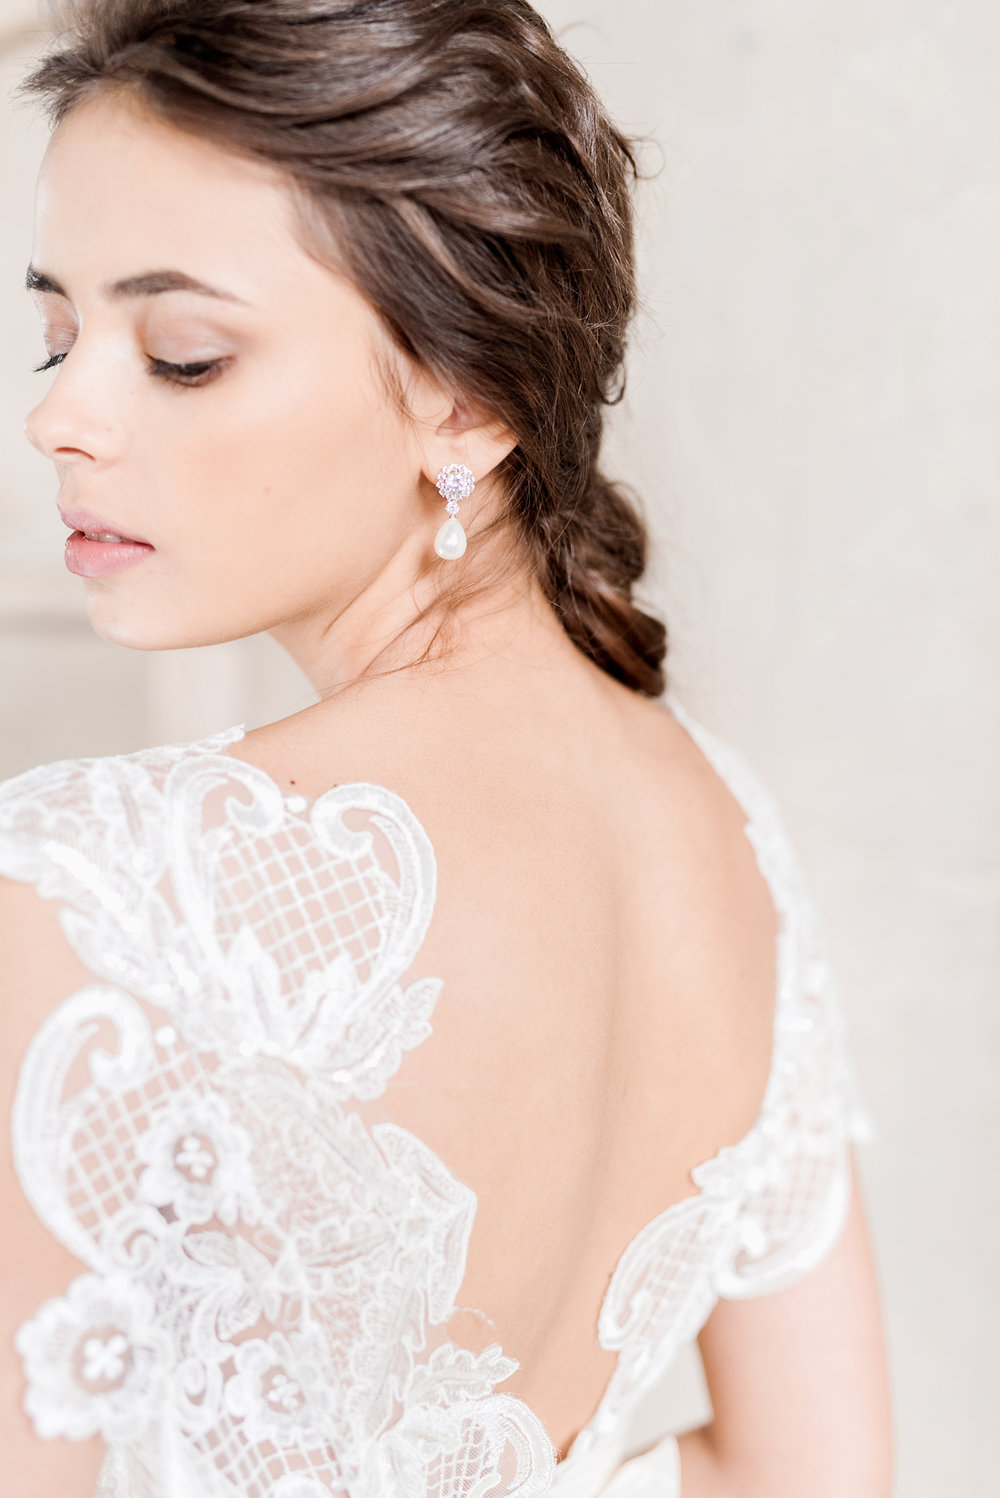 Anna Campbell Bridal | Savannah Dress | Vintage Inspired Lace Wedding Dress | Eternal Heart Collection